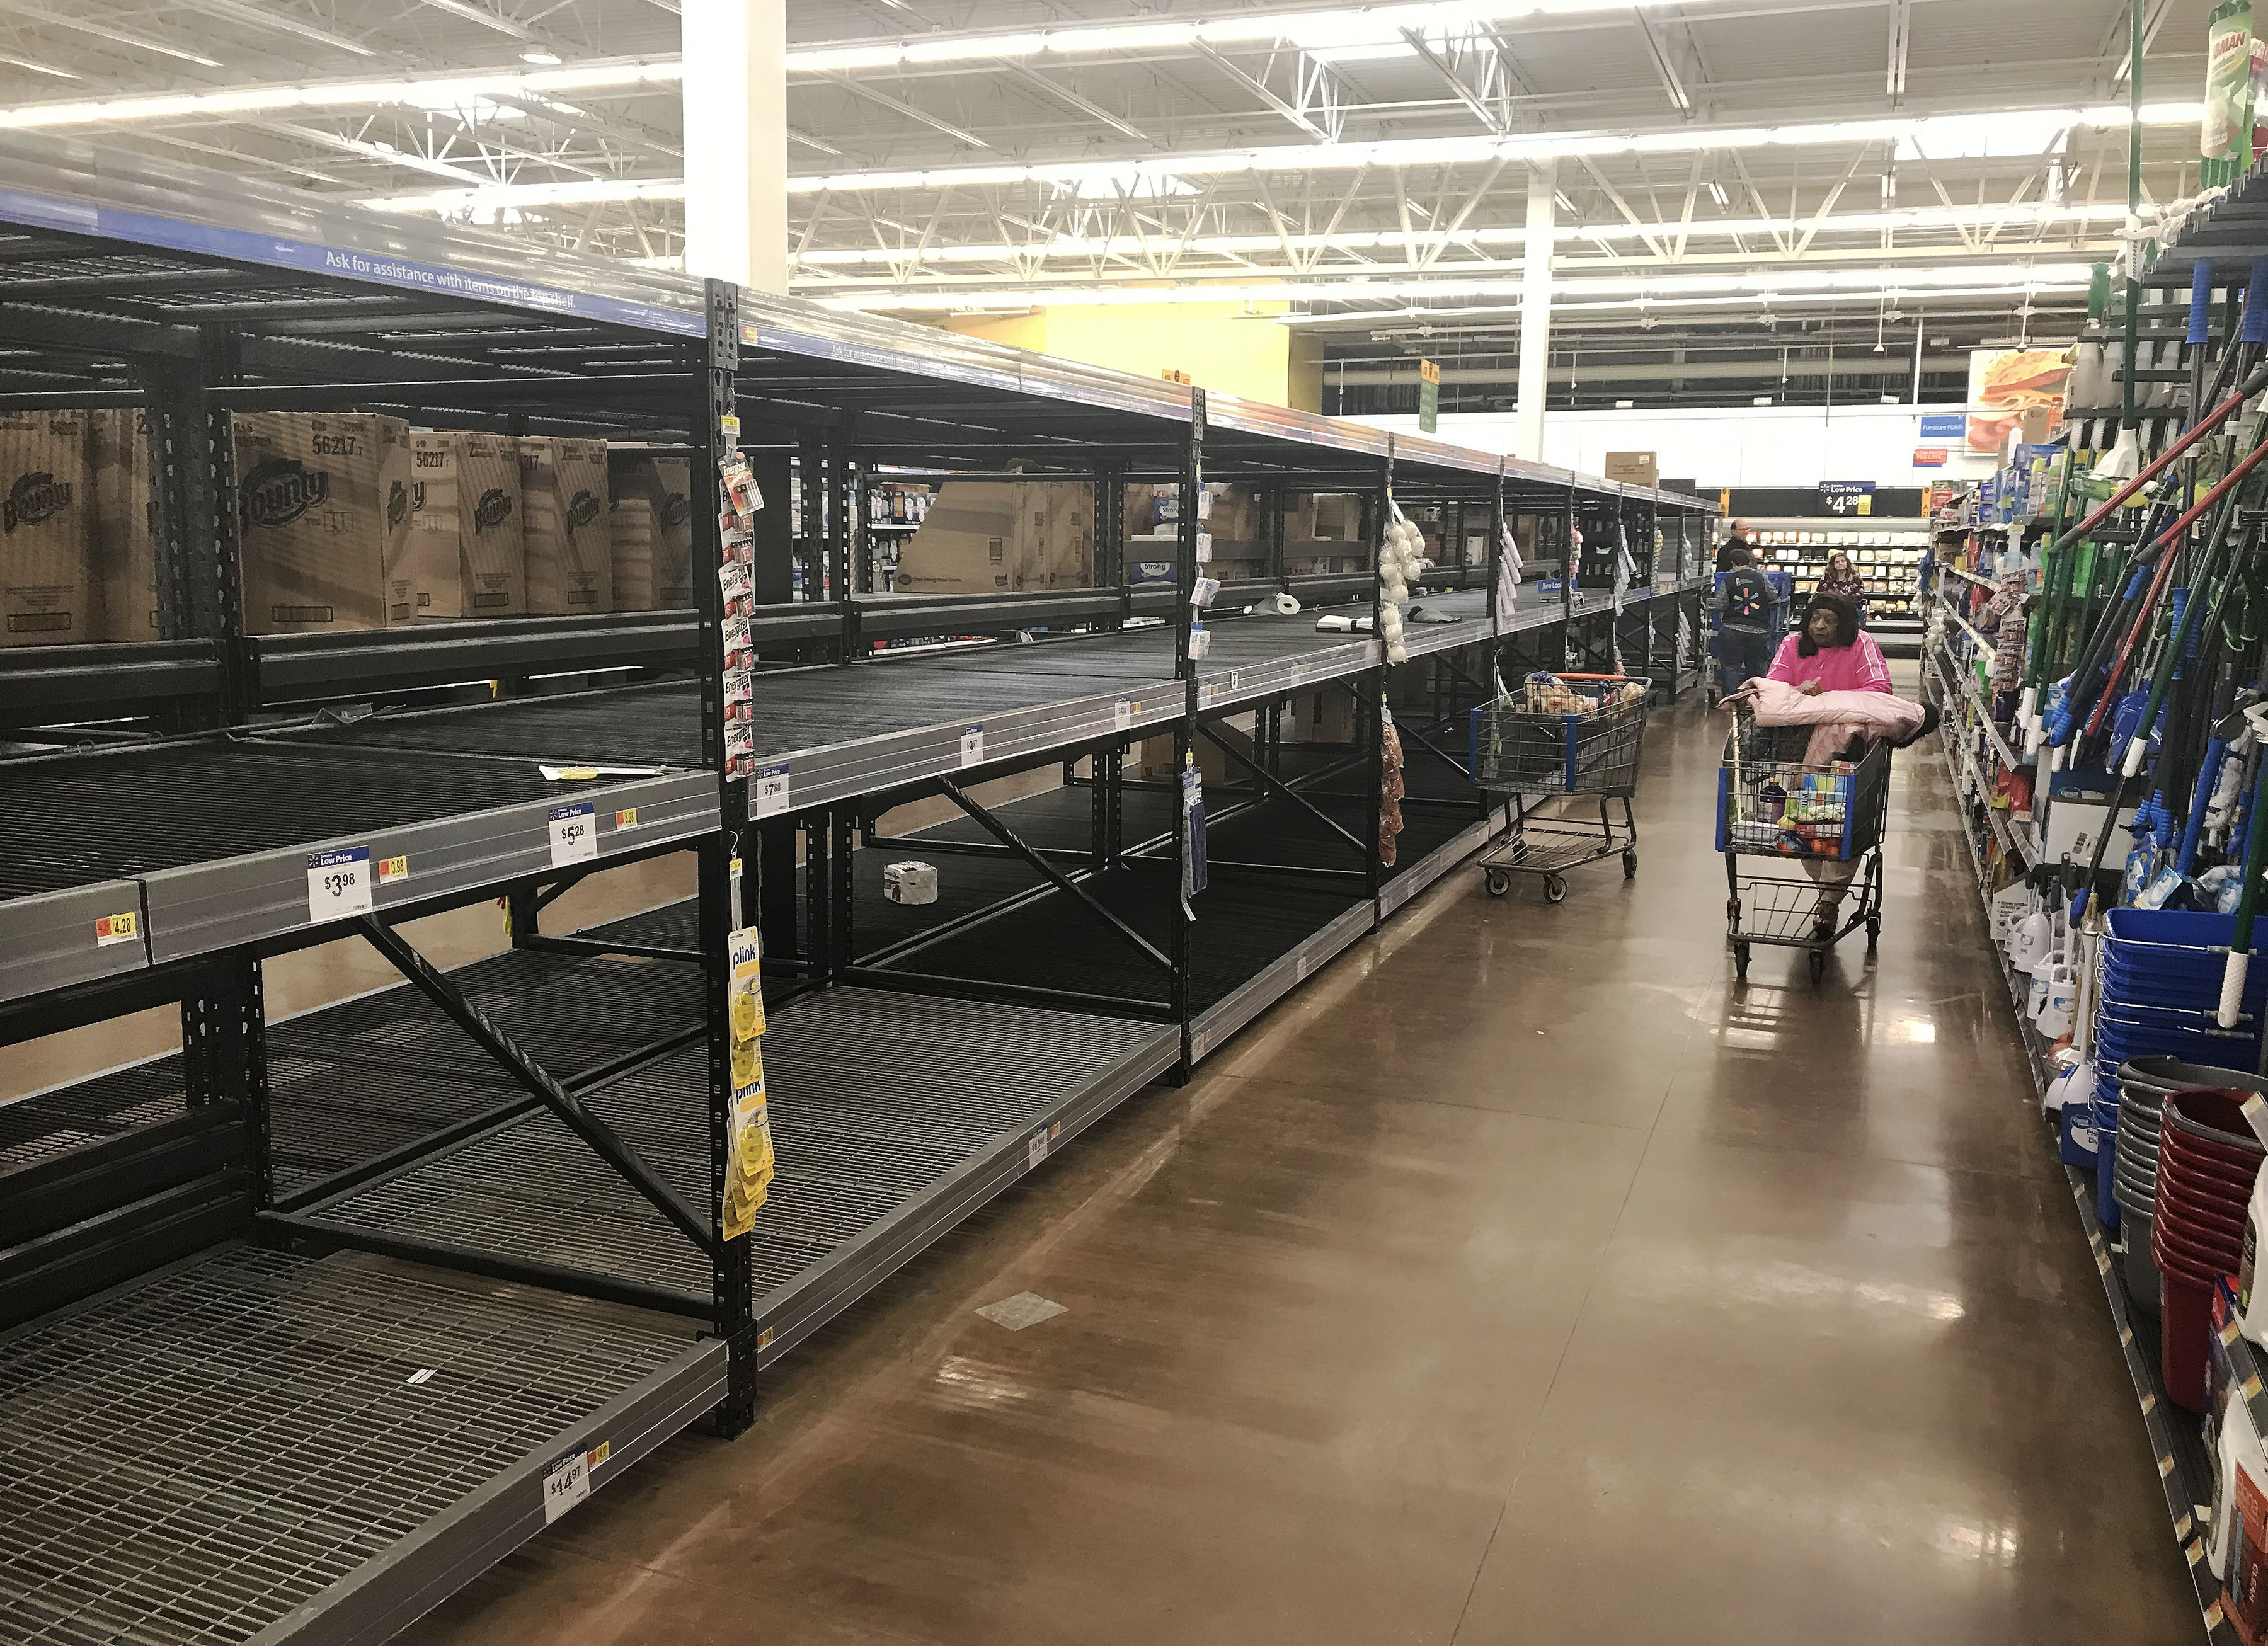 Shoppers emptied an aisle of toilet paper at a Wal-Mart in Streetsboro, Ohio.